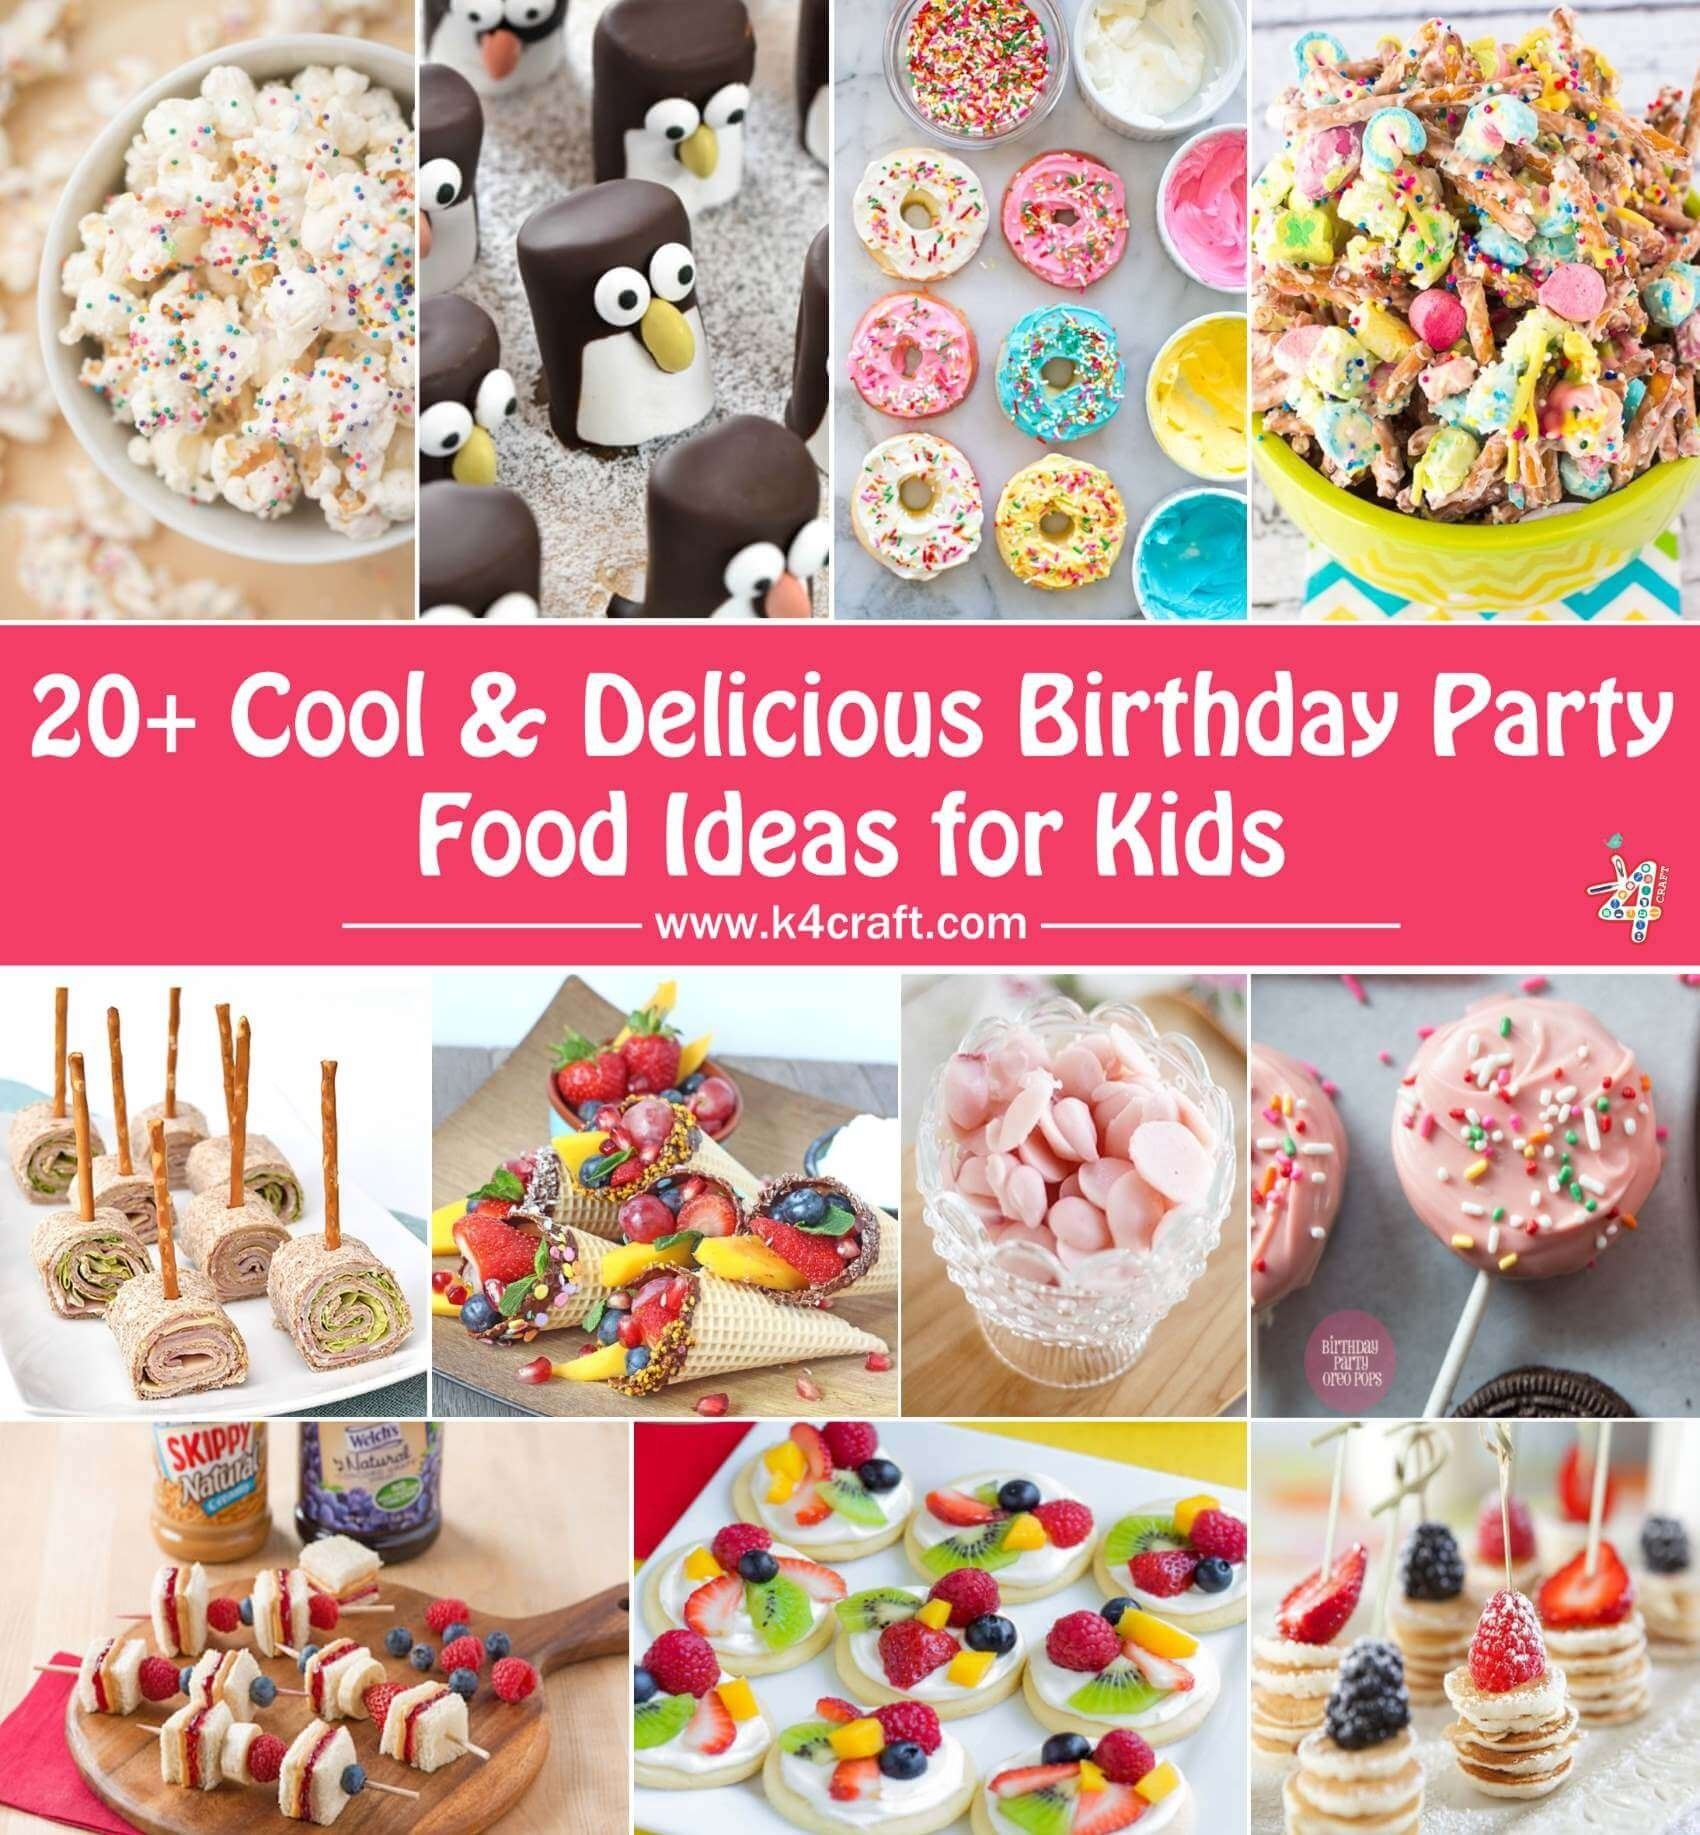 10 Awesome Toddler Birthday Party Food Ideas cool delicious birthday party food ideas for kids k4 craft 2 2020